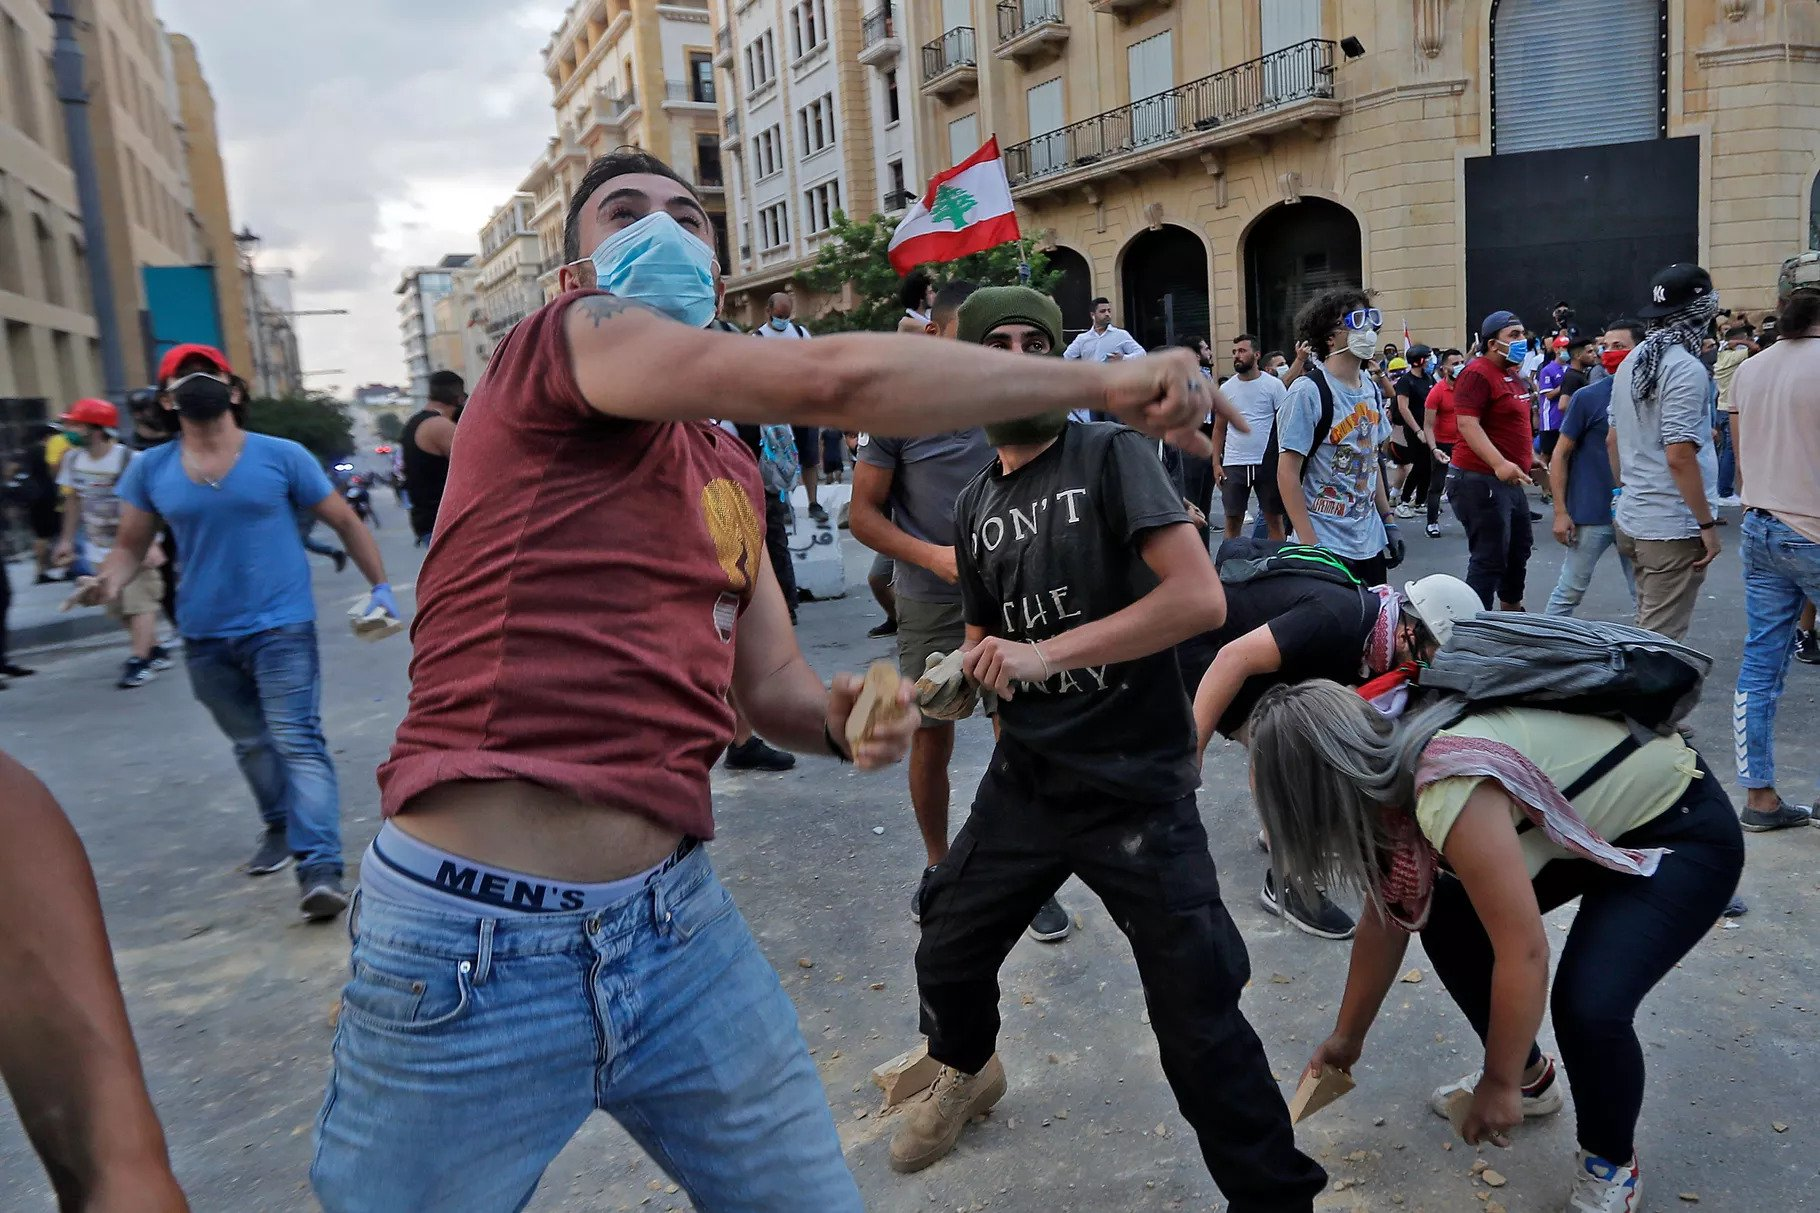 Lebanese protesters, enraged by last week's deadly Beirut explosion, hurl stones at security forces amid clashes in the vicinity of the parliament building in central Beirut on August 10, 2020. Joseph Eid/AFP via Getty Images